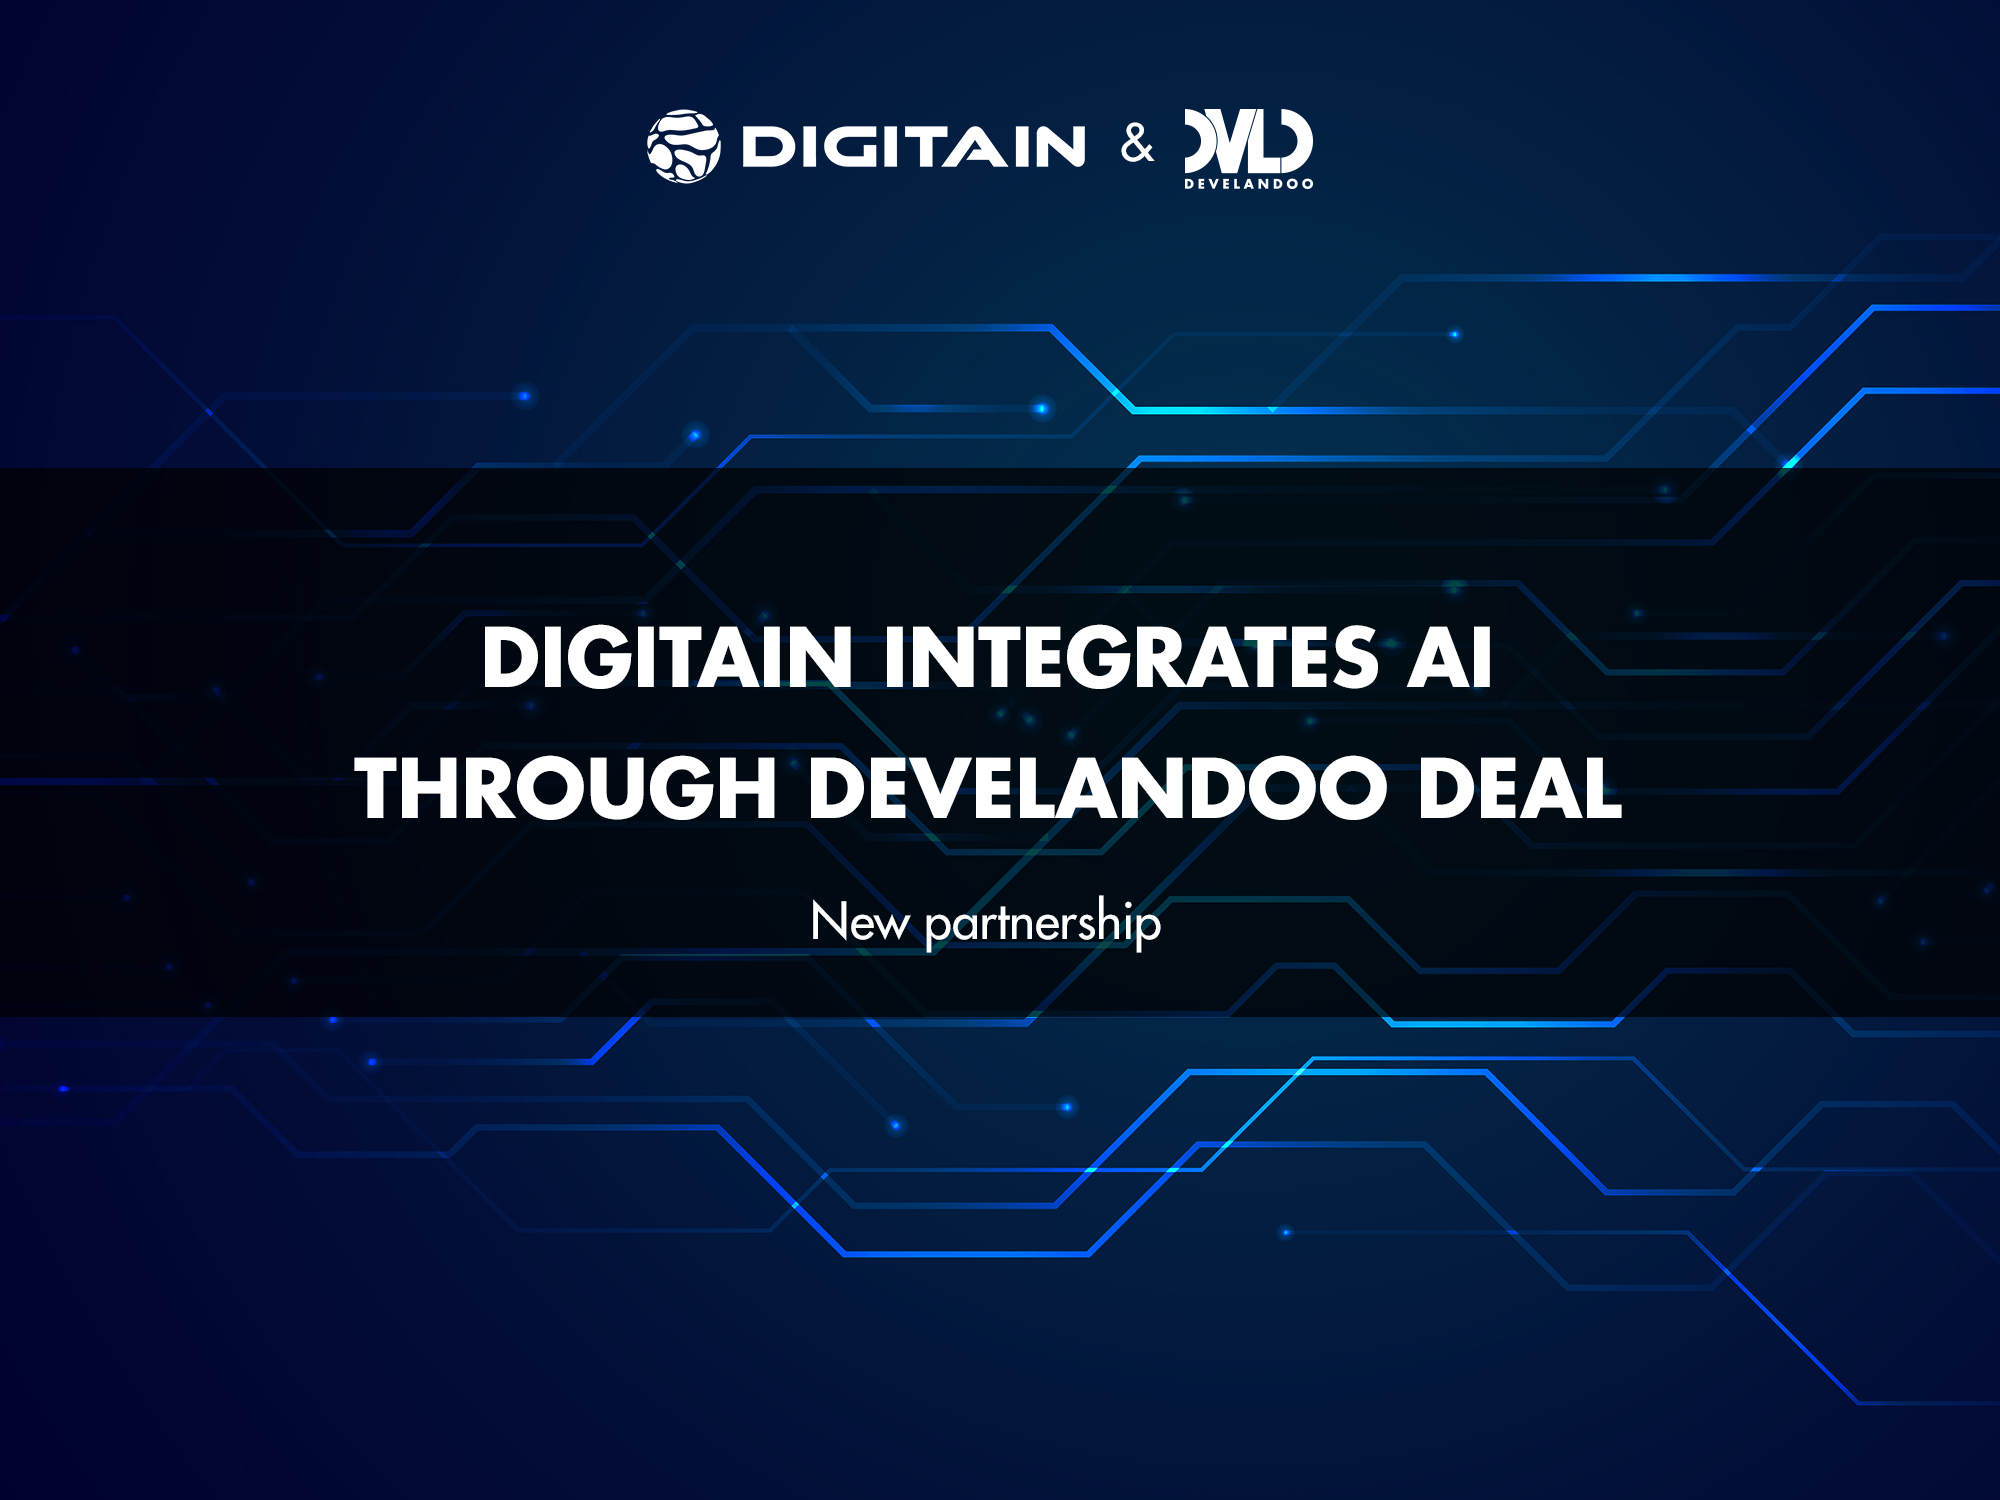 Develandoo's AI Solutions To Be Integrated onto Digitain's Platforms